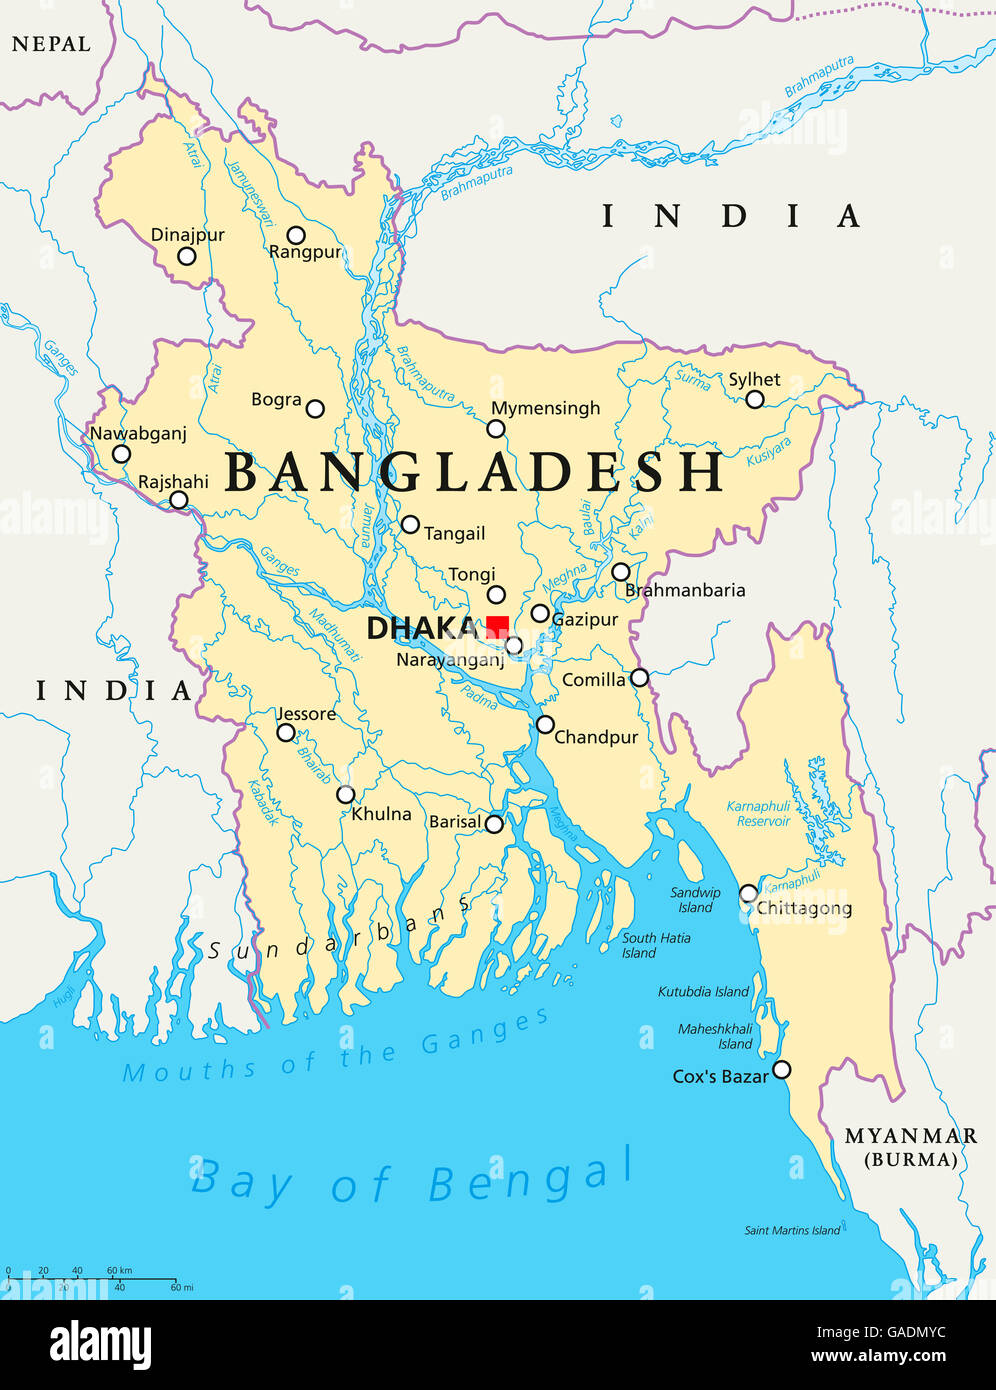 India Bangladesh Map Stock Photos & India Bangladesh Map Stock ...